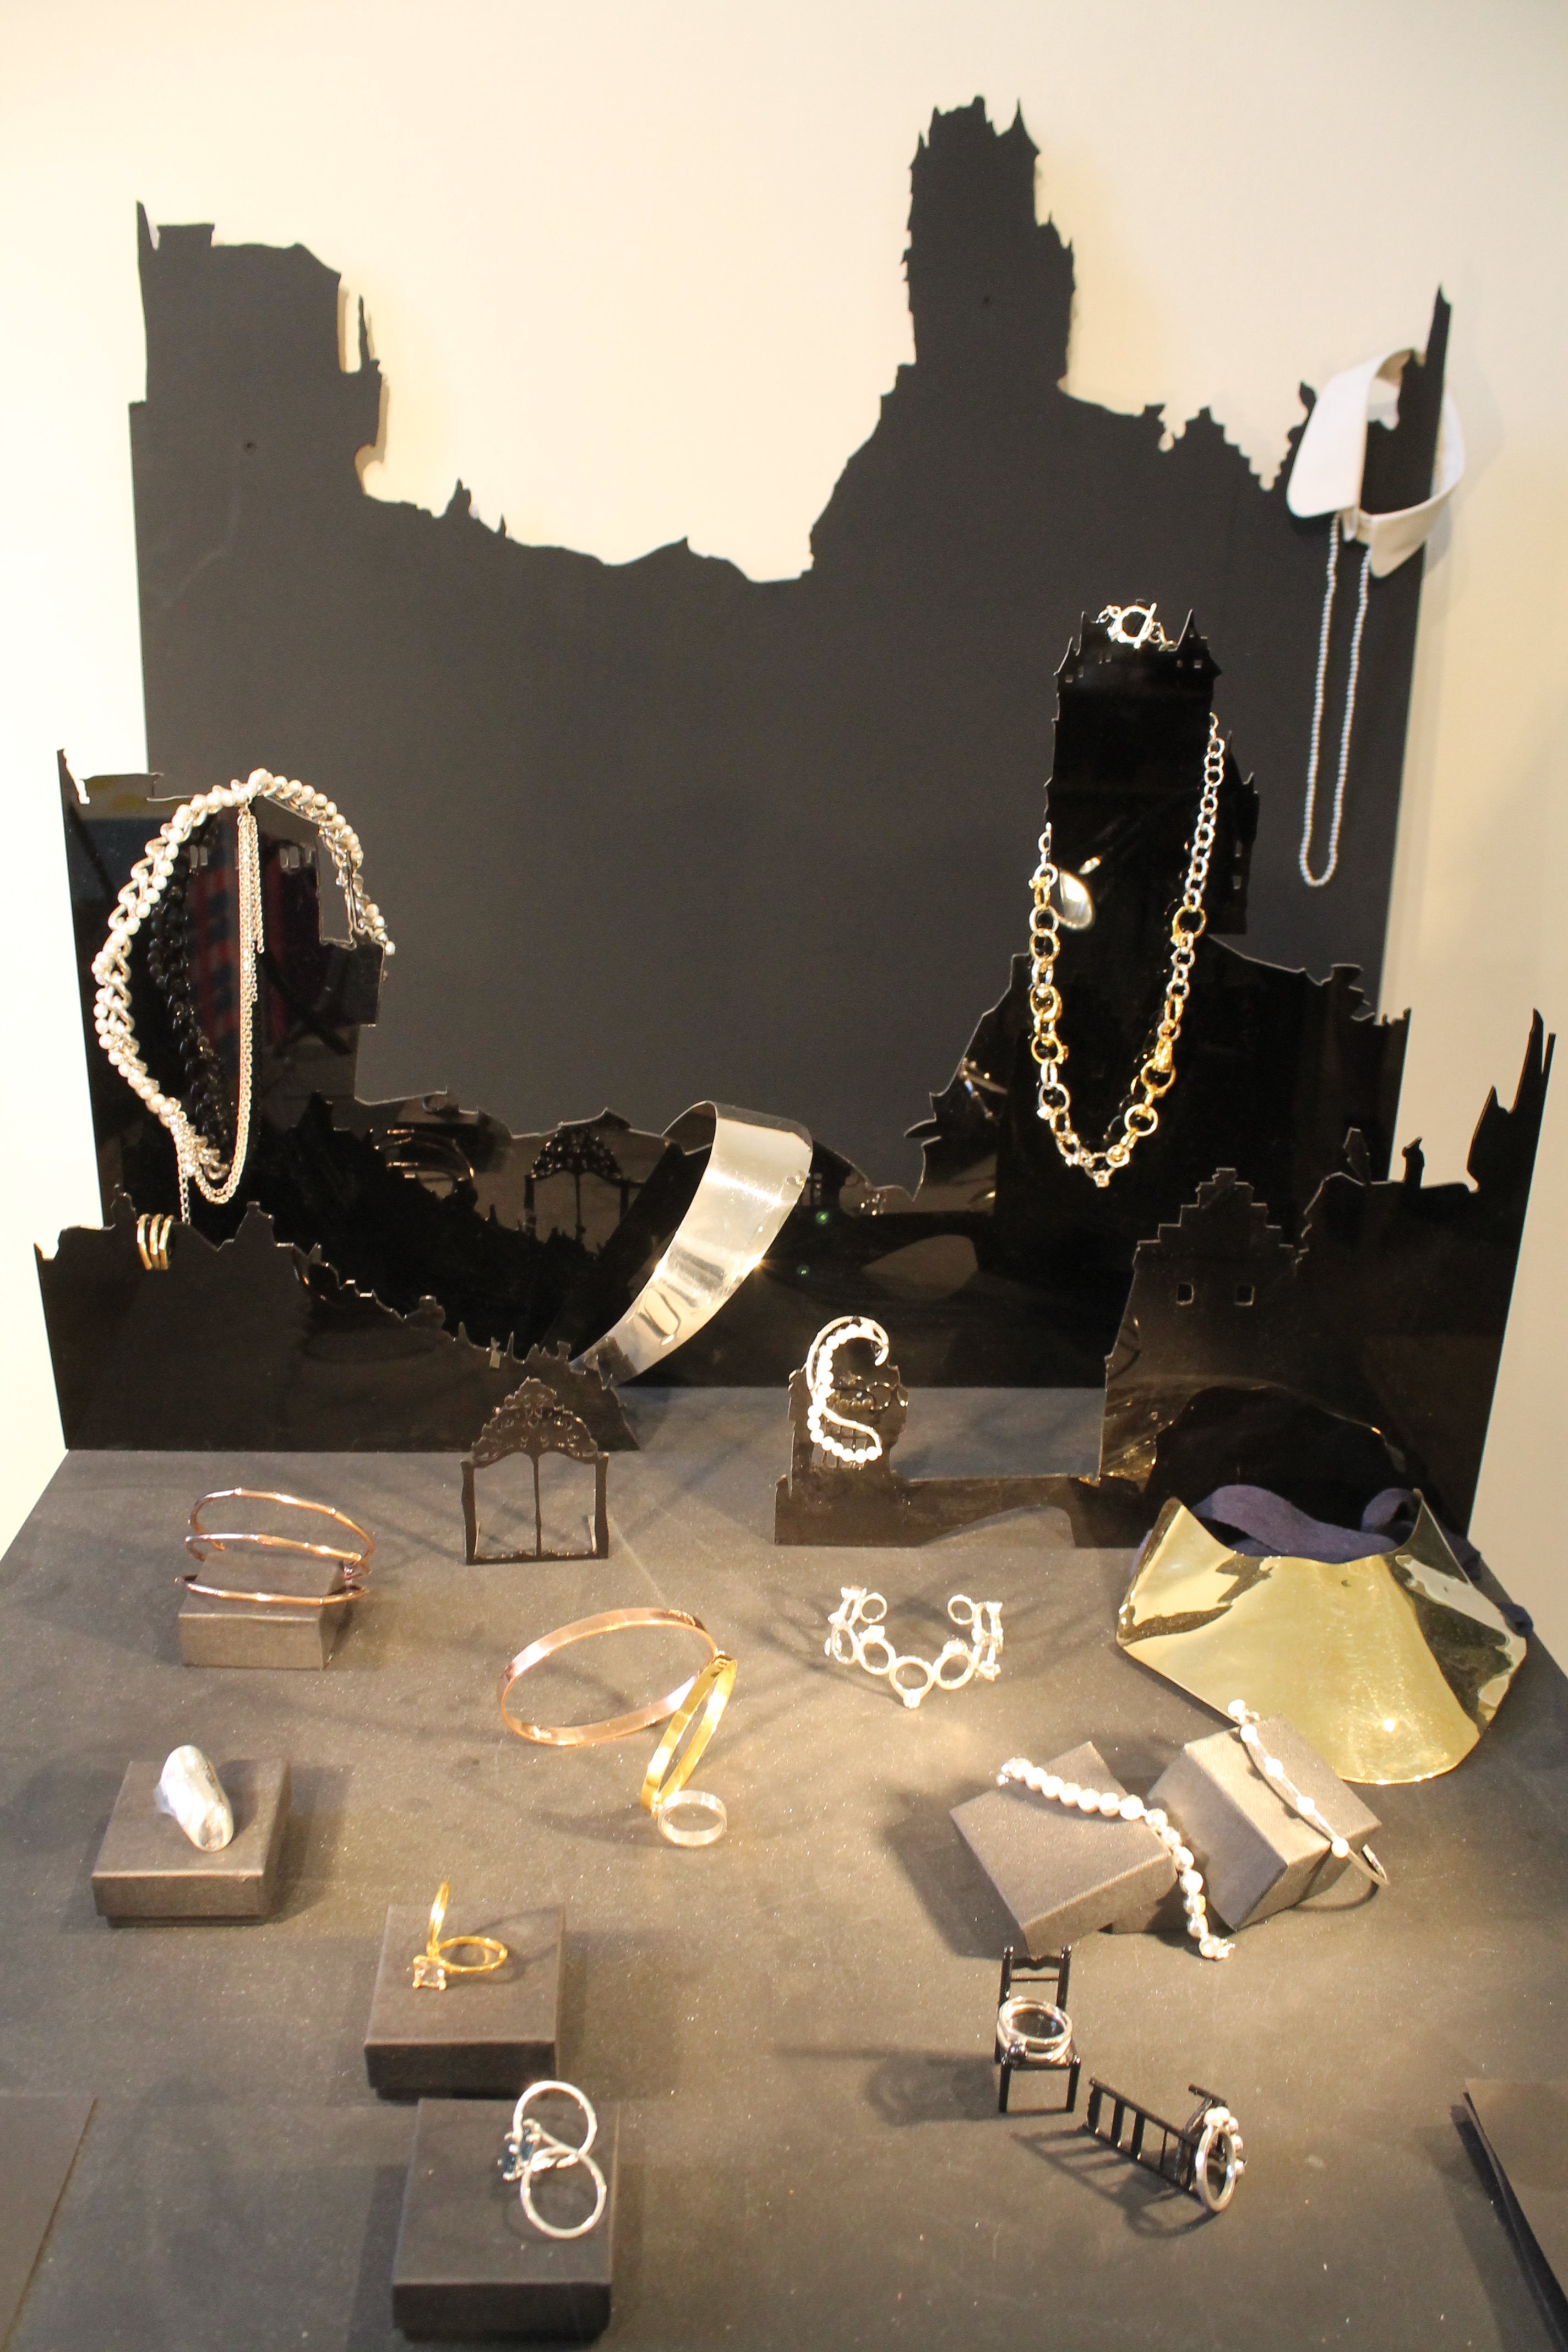 Interesting jewelry display setting resembling shadows of cities for modern minimalist jewelry.